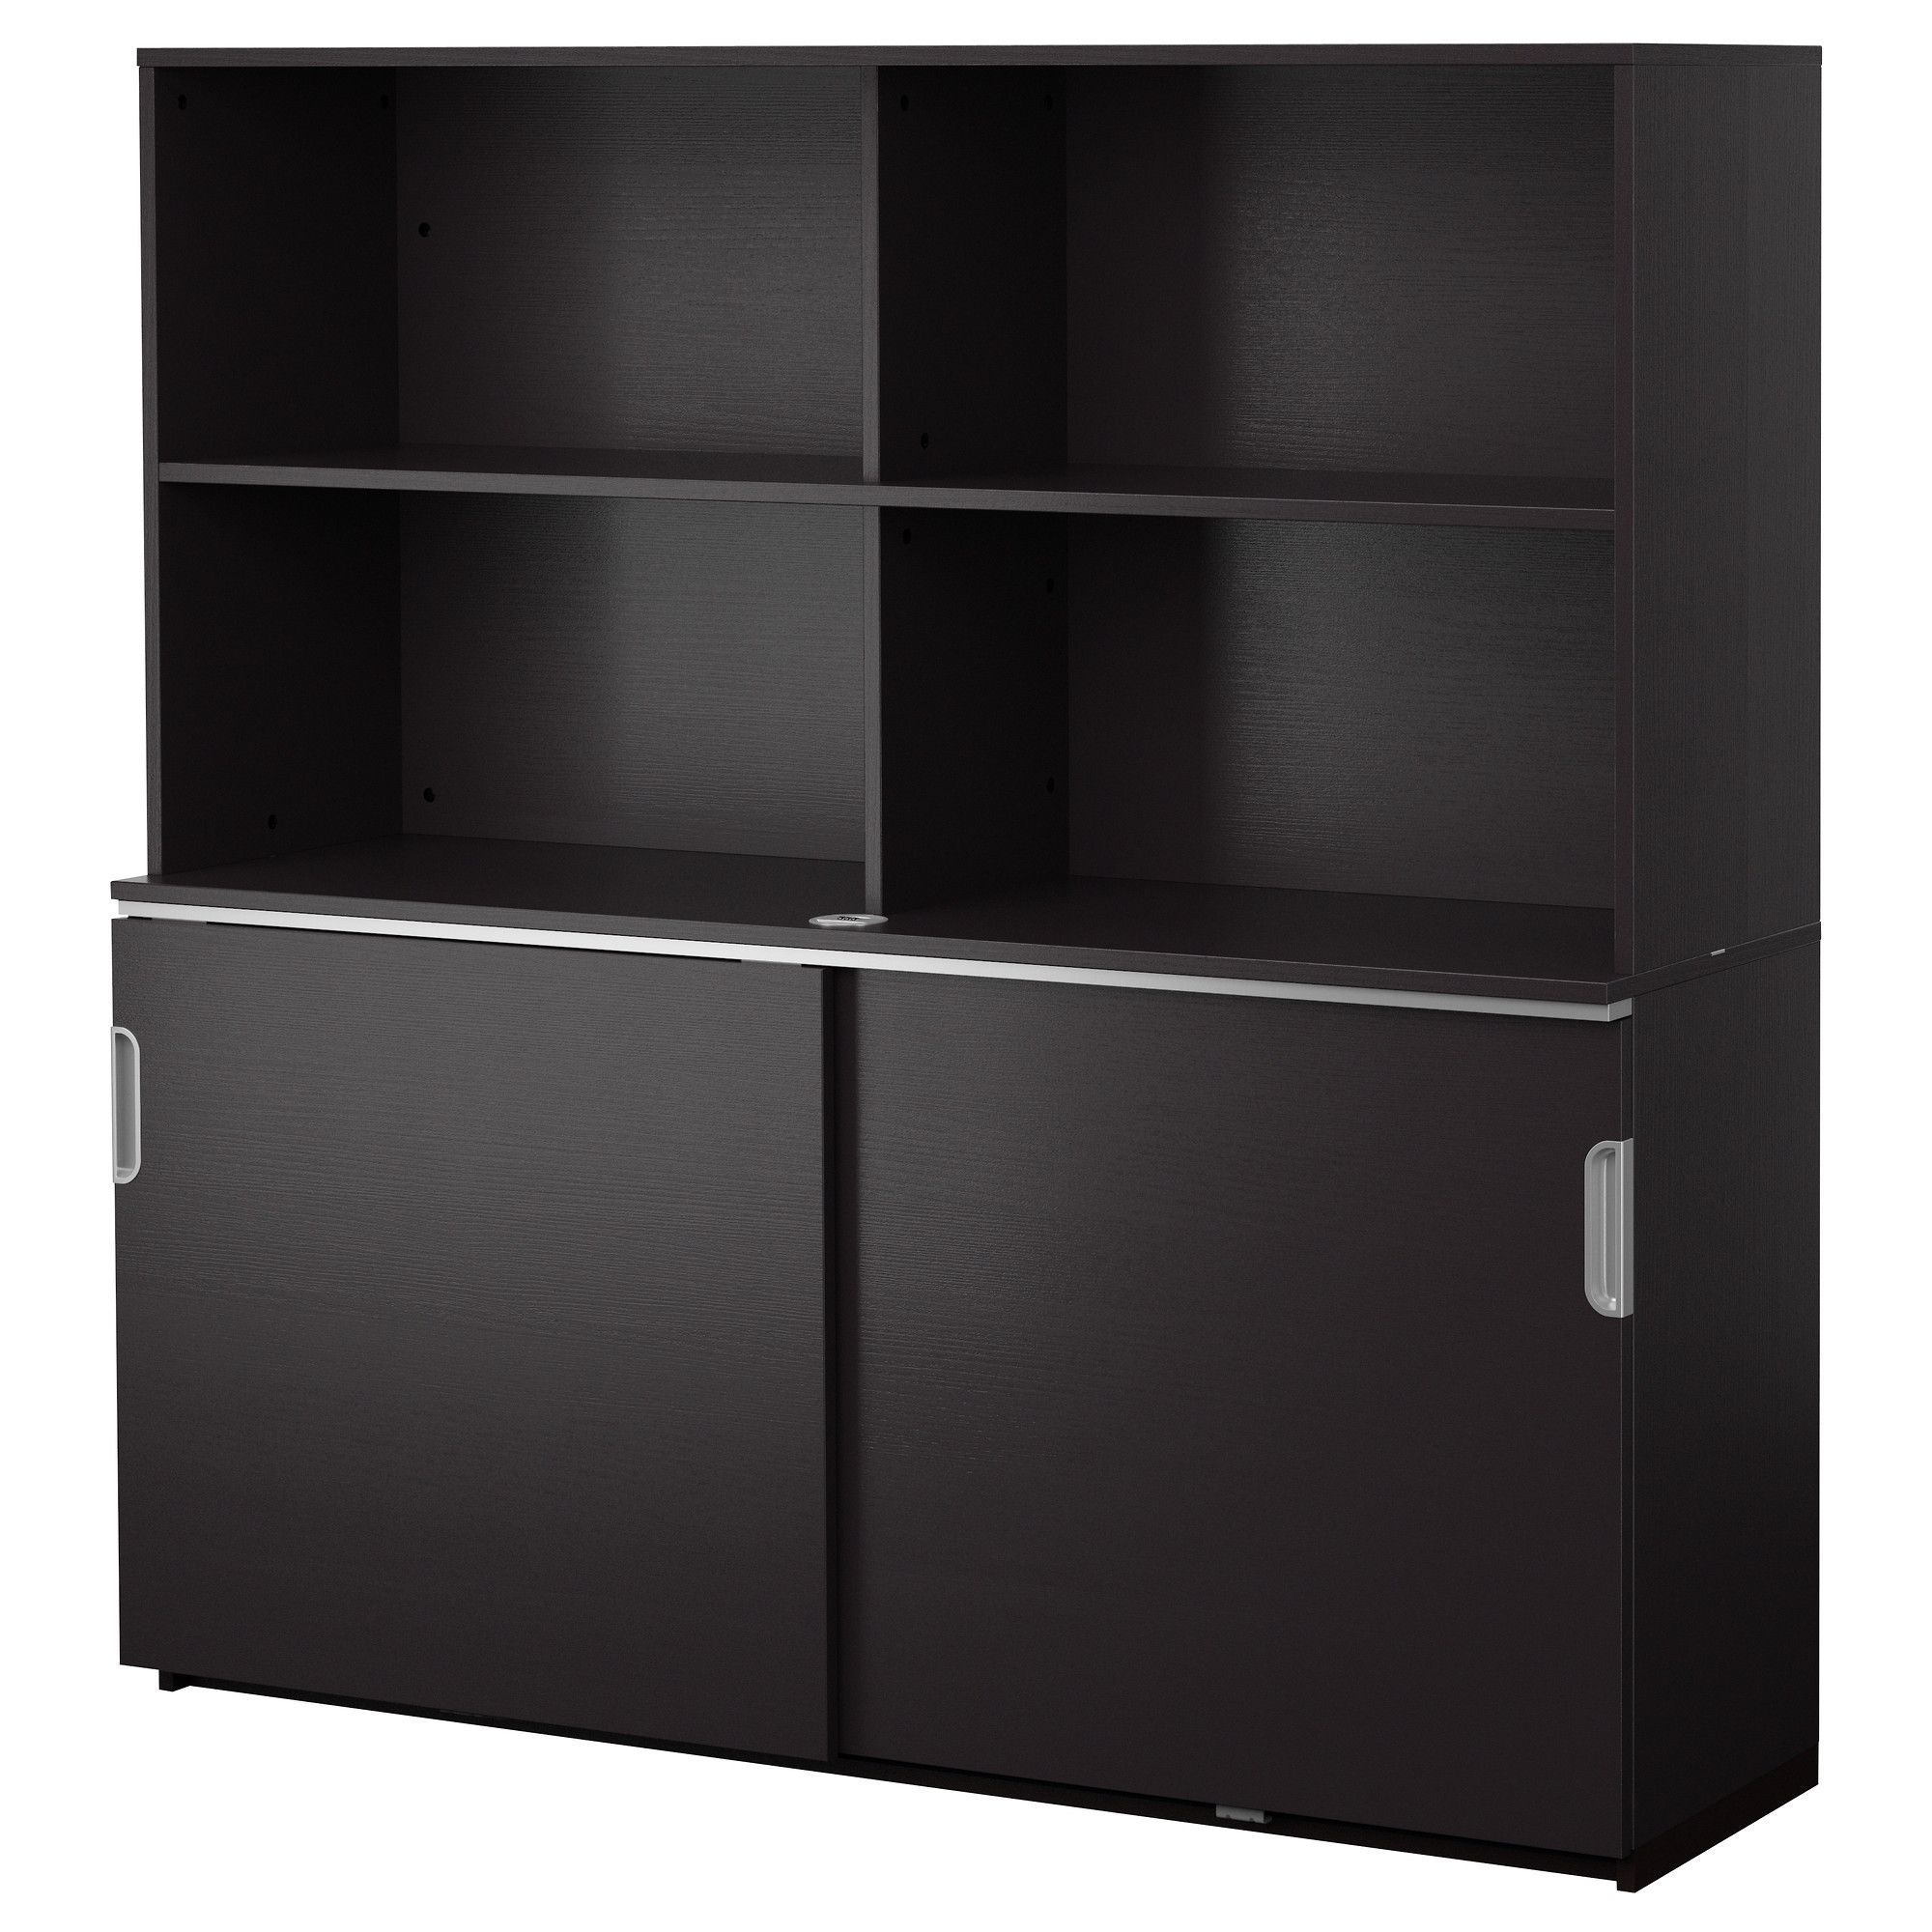 sliding door office cupboard. GALANT Storage Combination W Sliding Doors - Black-brown IKEA. Office CabinetsFiling Door Cupboard C